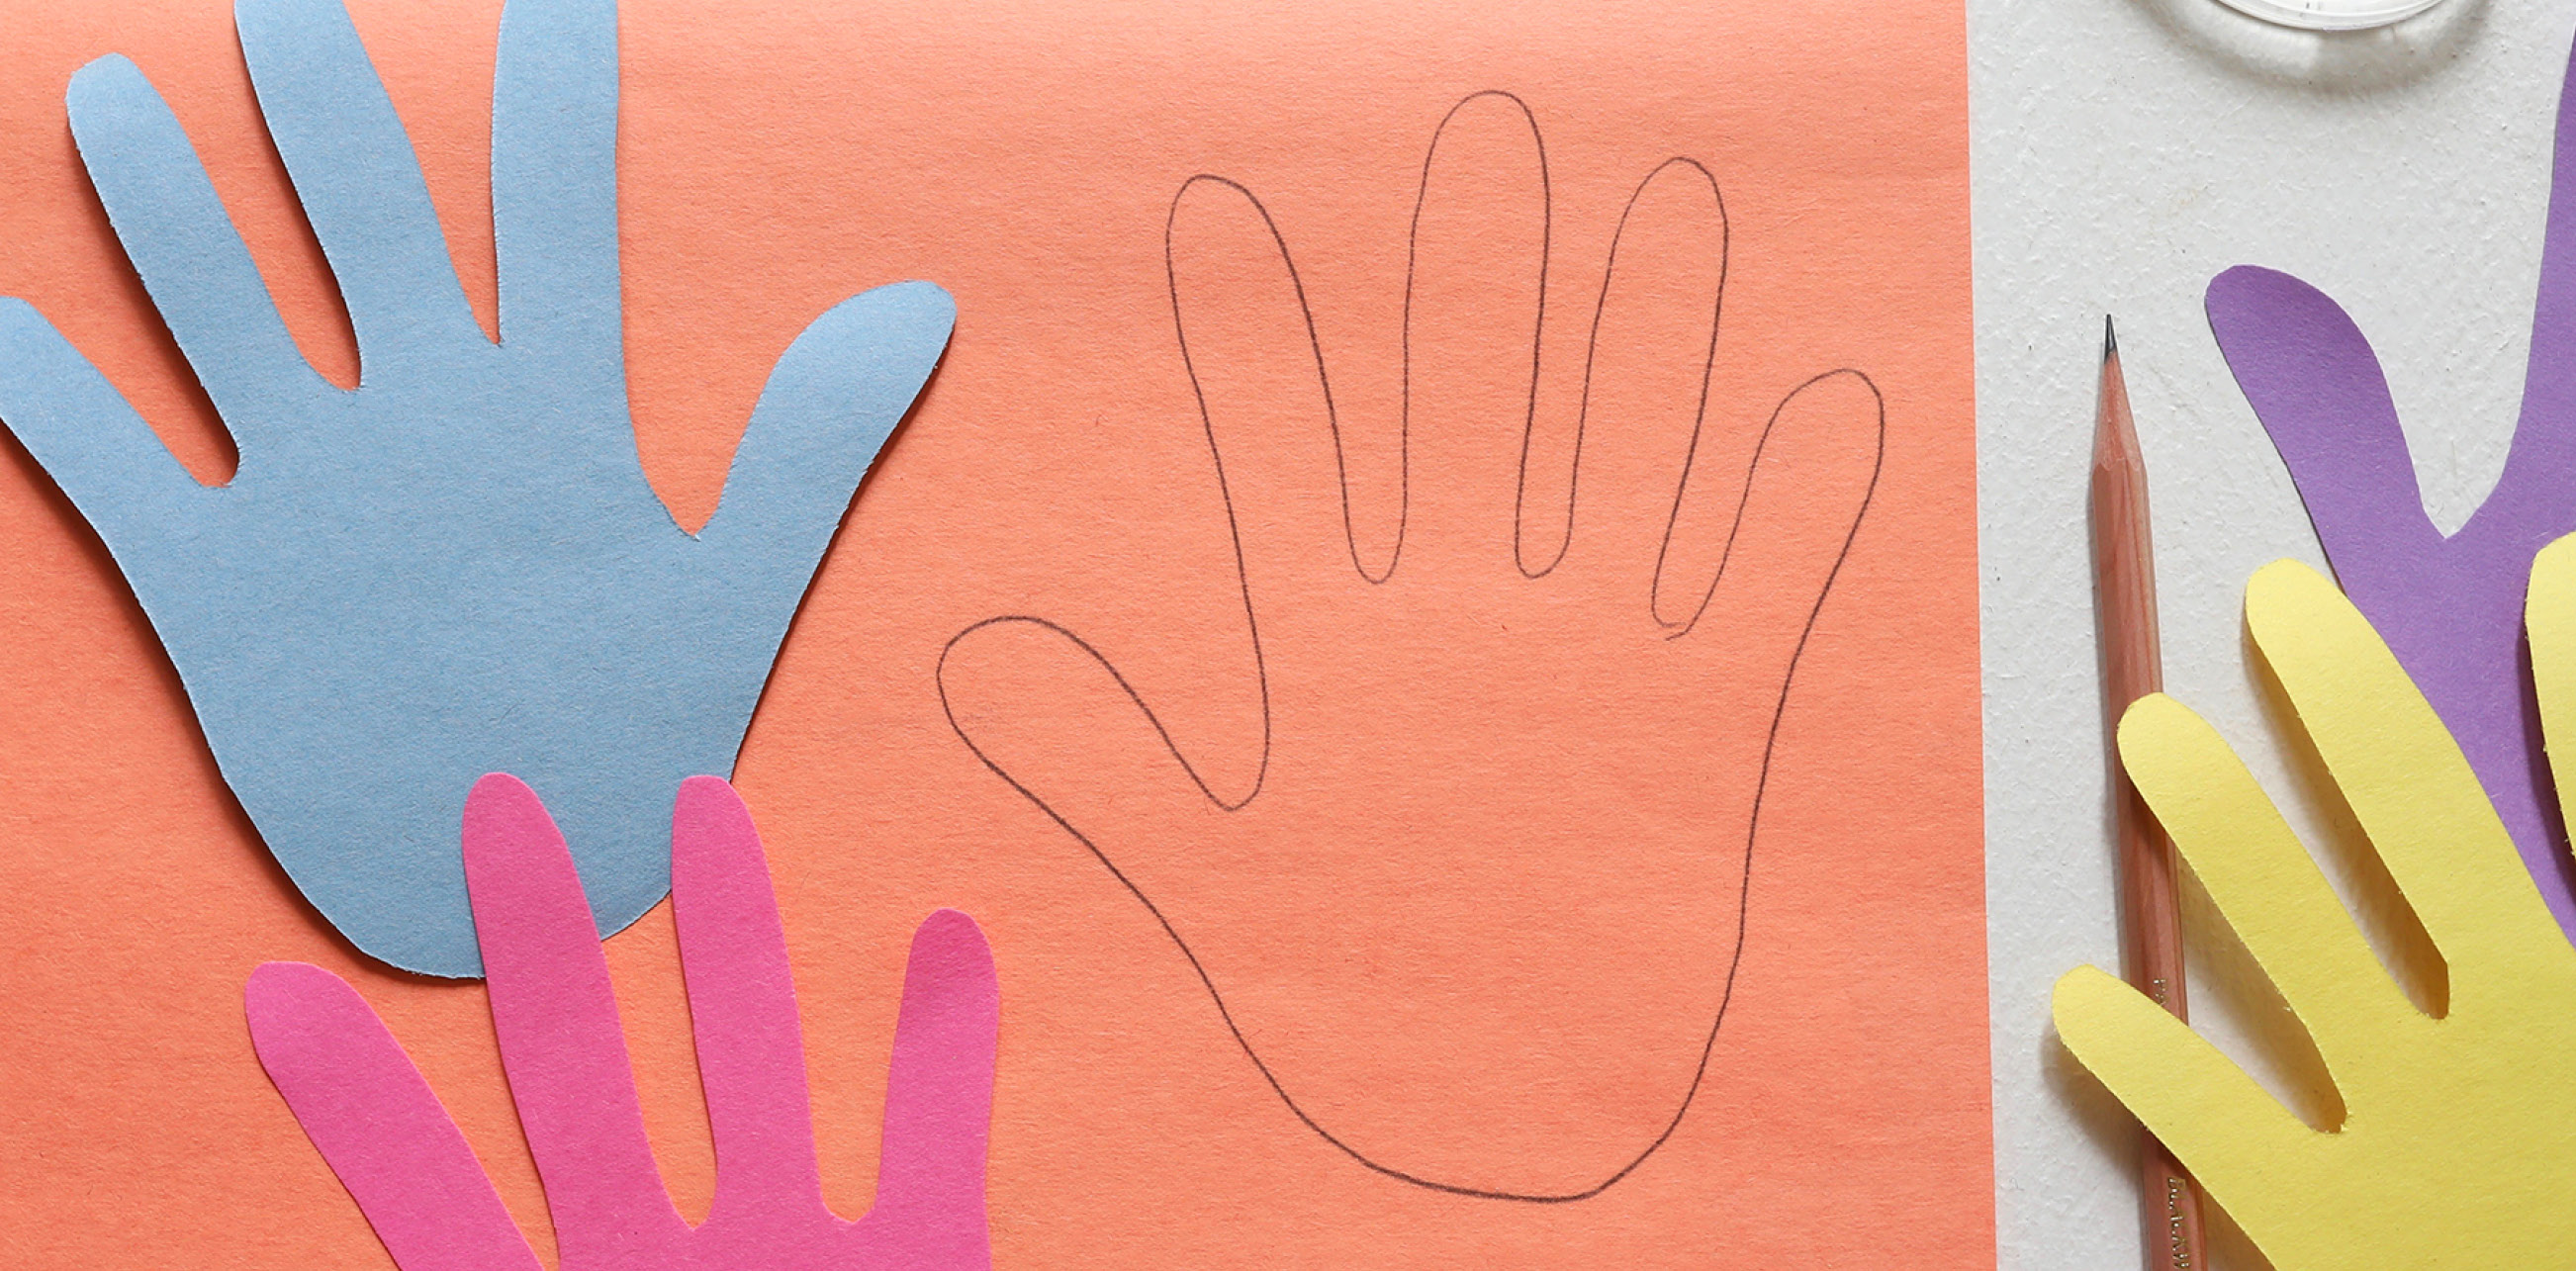 handprints on paper